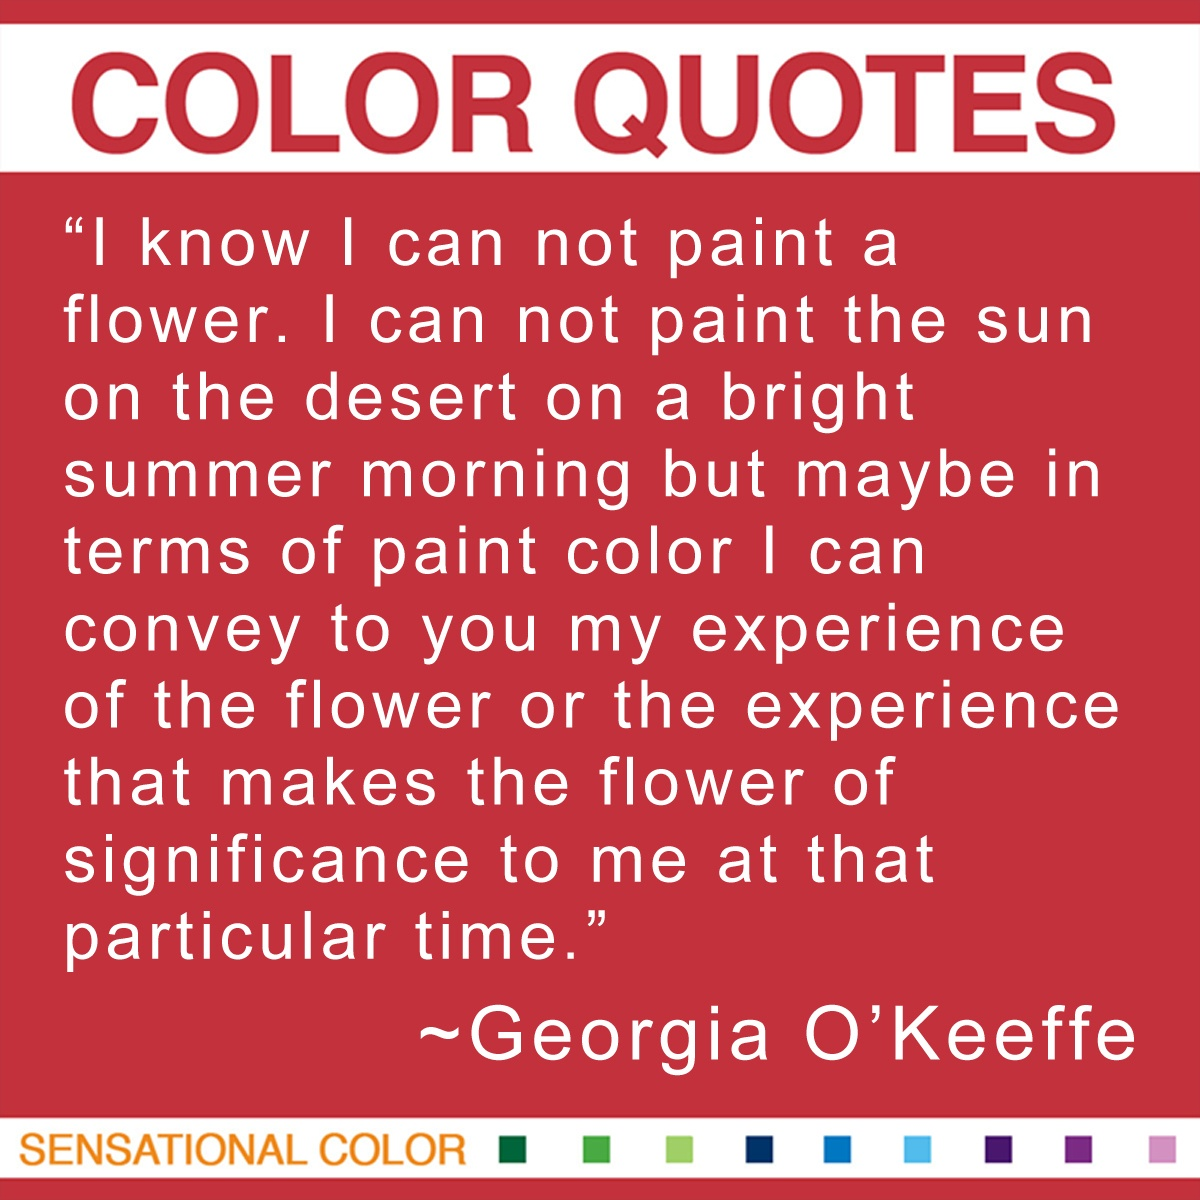 """I know I can not paint a flower. I can not paint the sun on the desert on a bright summer morning but maybe in terms of paint color I can convey to you my experience of the flower or the experience that makes the flower of significance to me at that particular time."" - Georgia O'Keeffe"